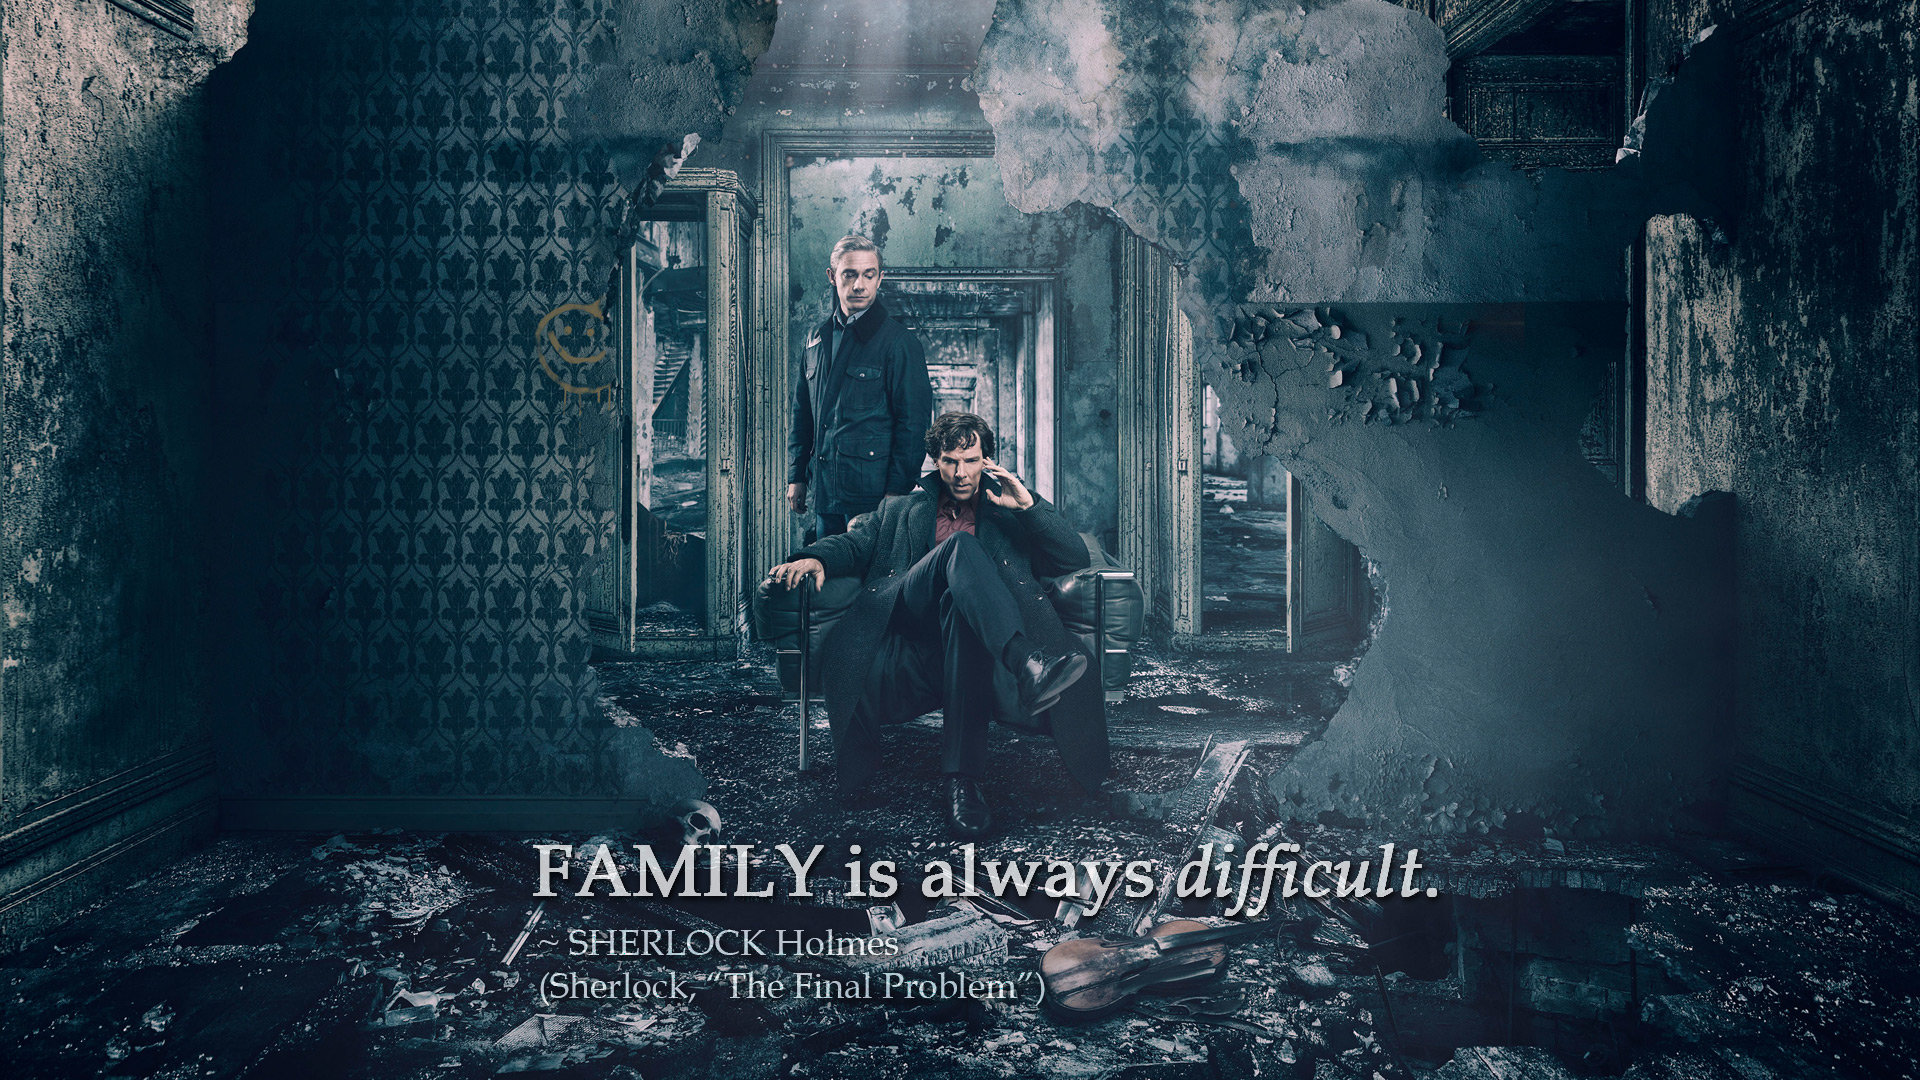 Family Is Always Difficult (Sherlock, The Final Problem)